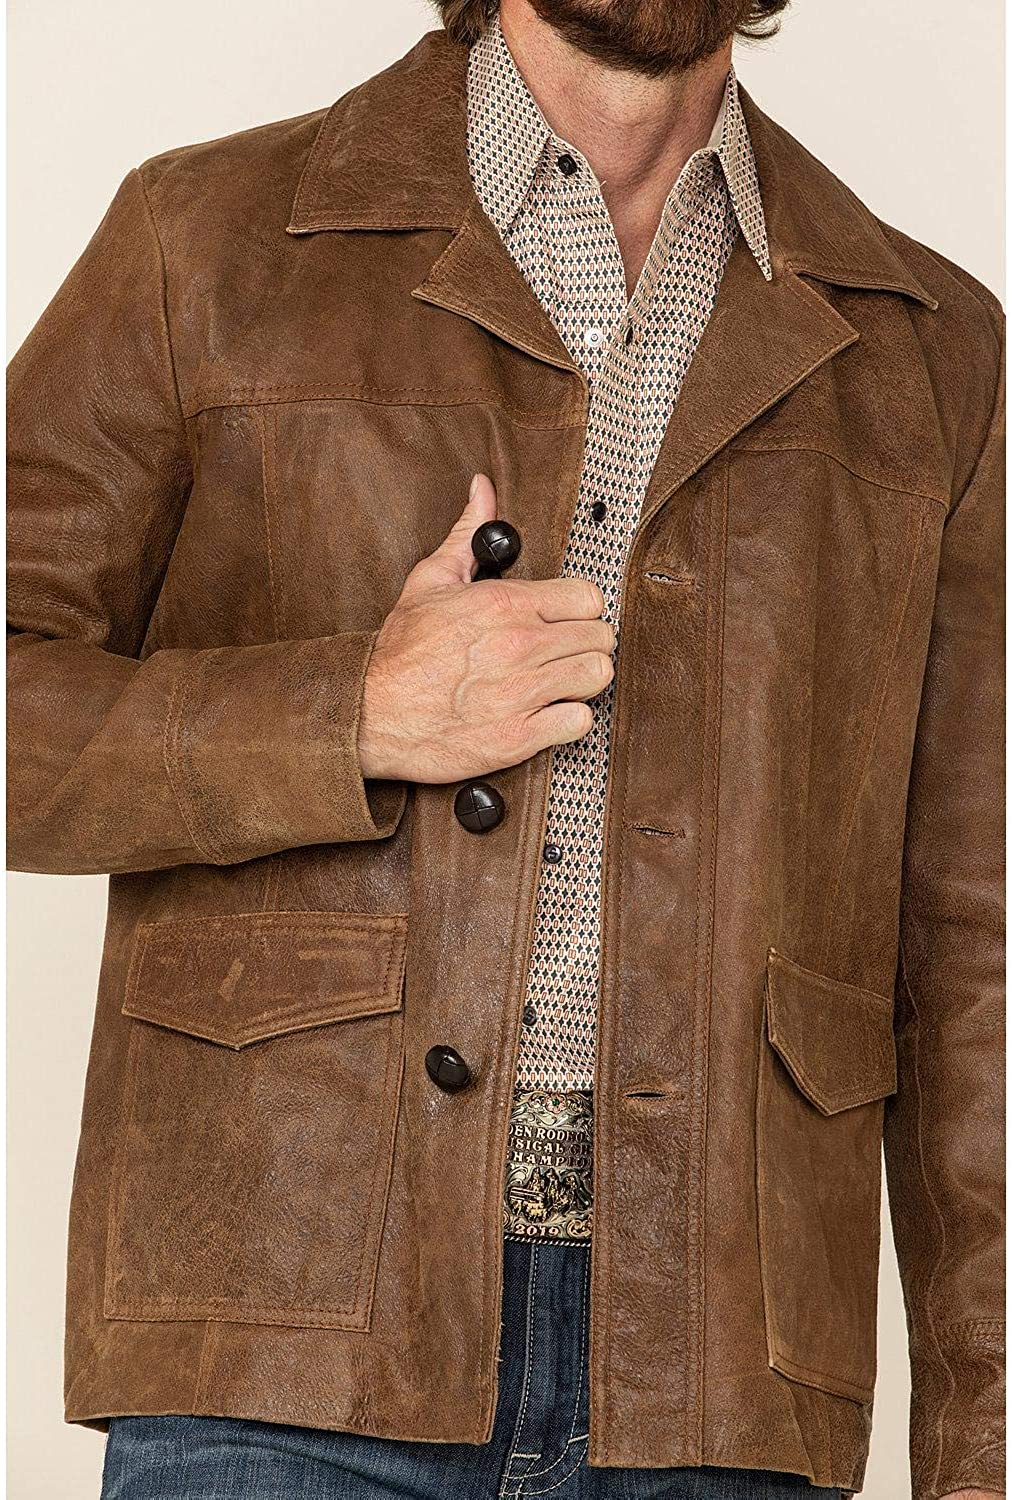 Milwaukee Leather Men's Button Front Car Jacket Brown Small